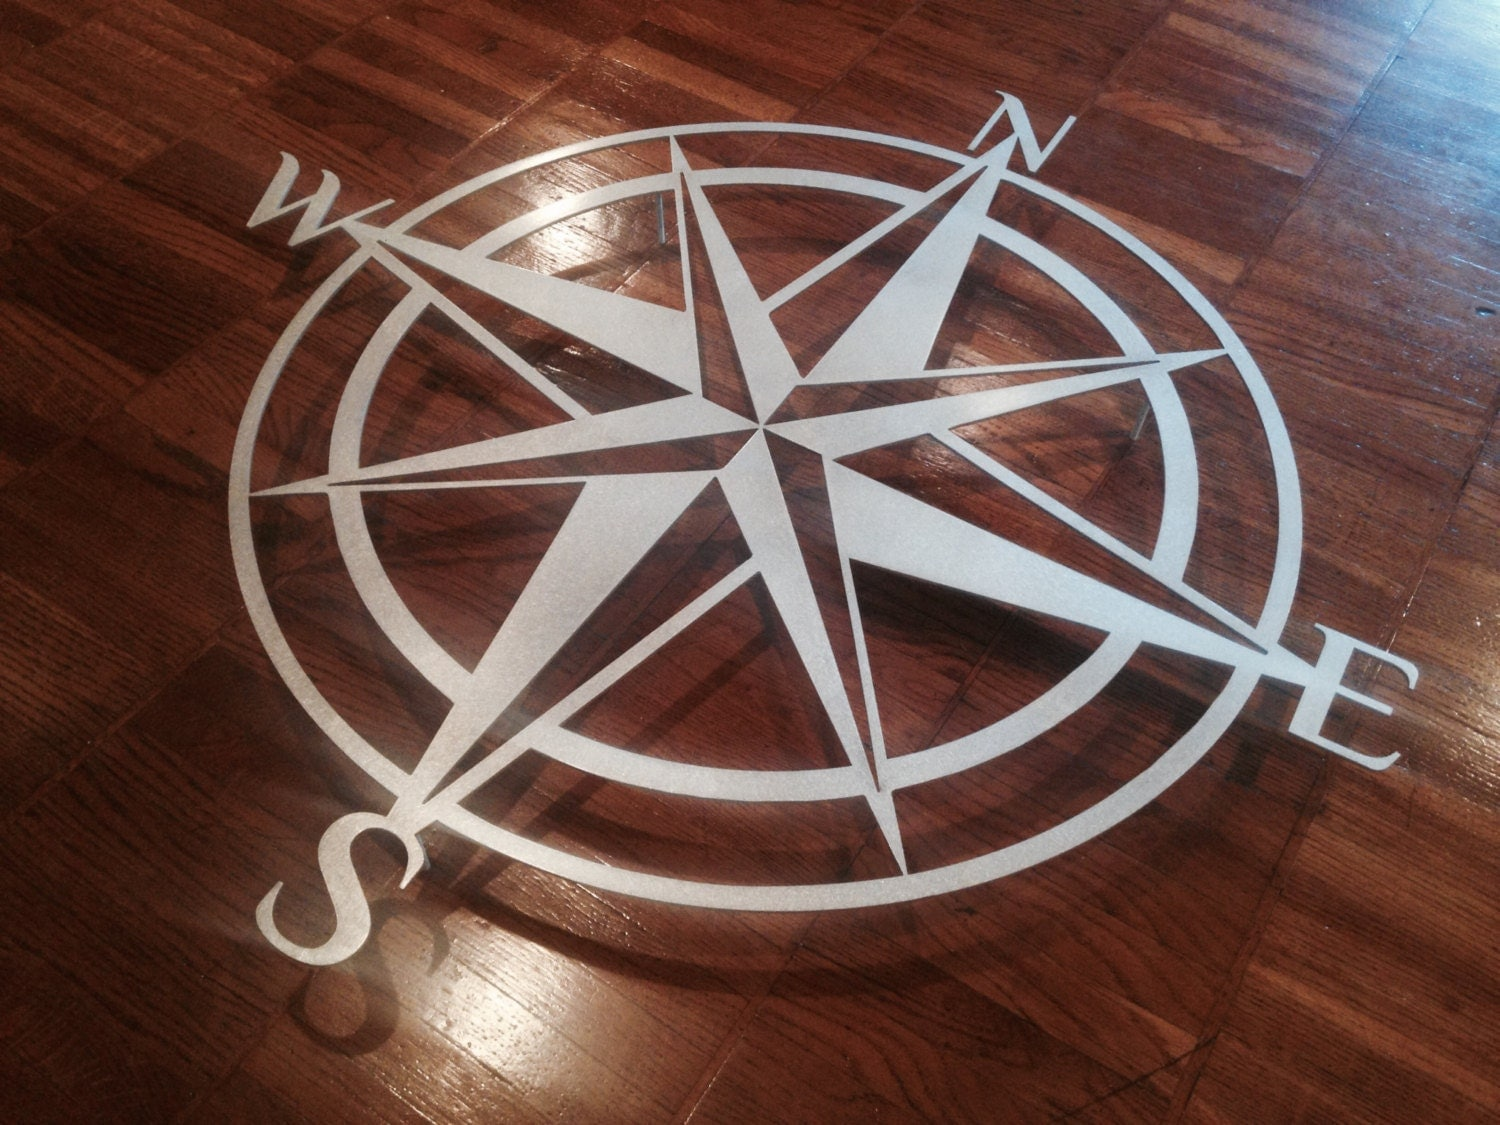 Giant Outdoor Wall Decor : Giant compass metal wall art abstract decor by